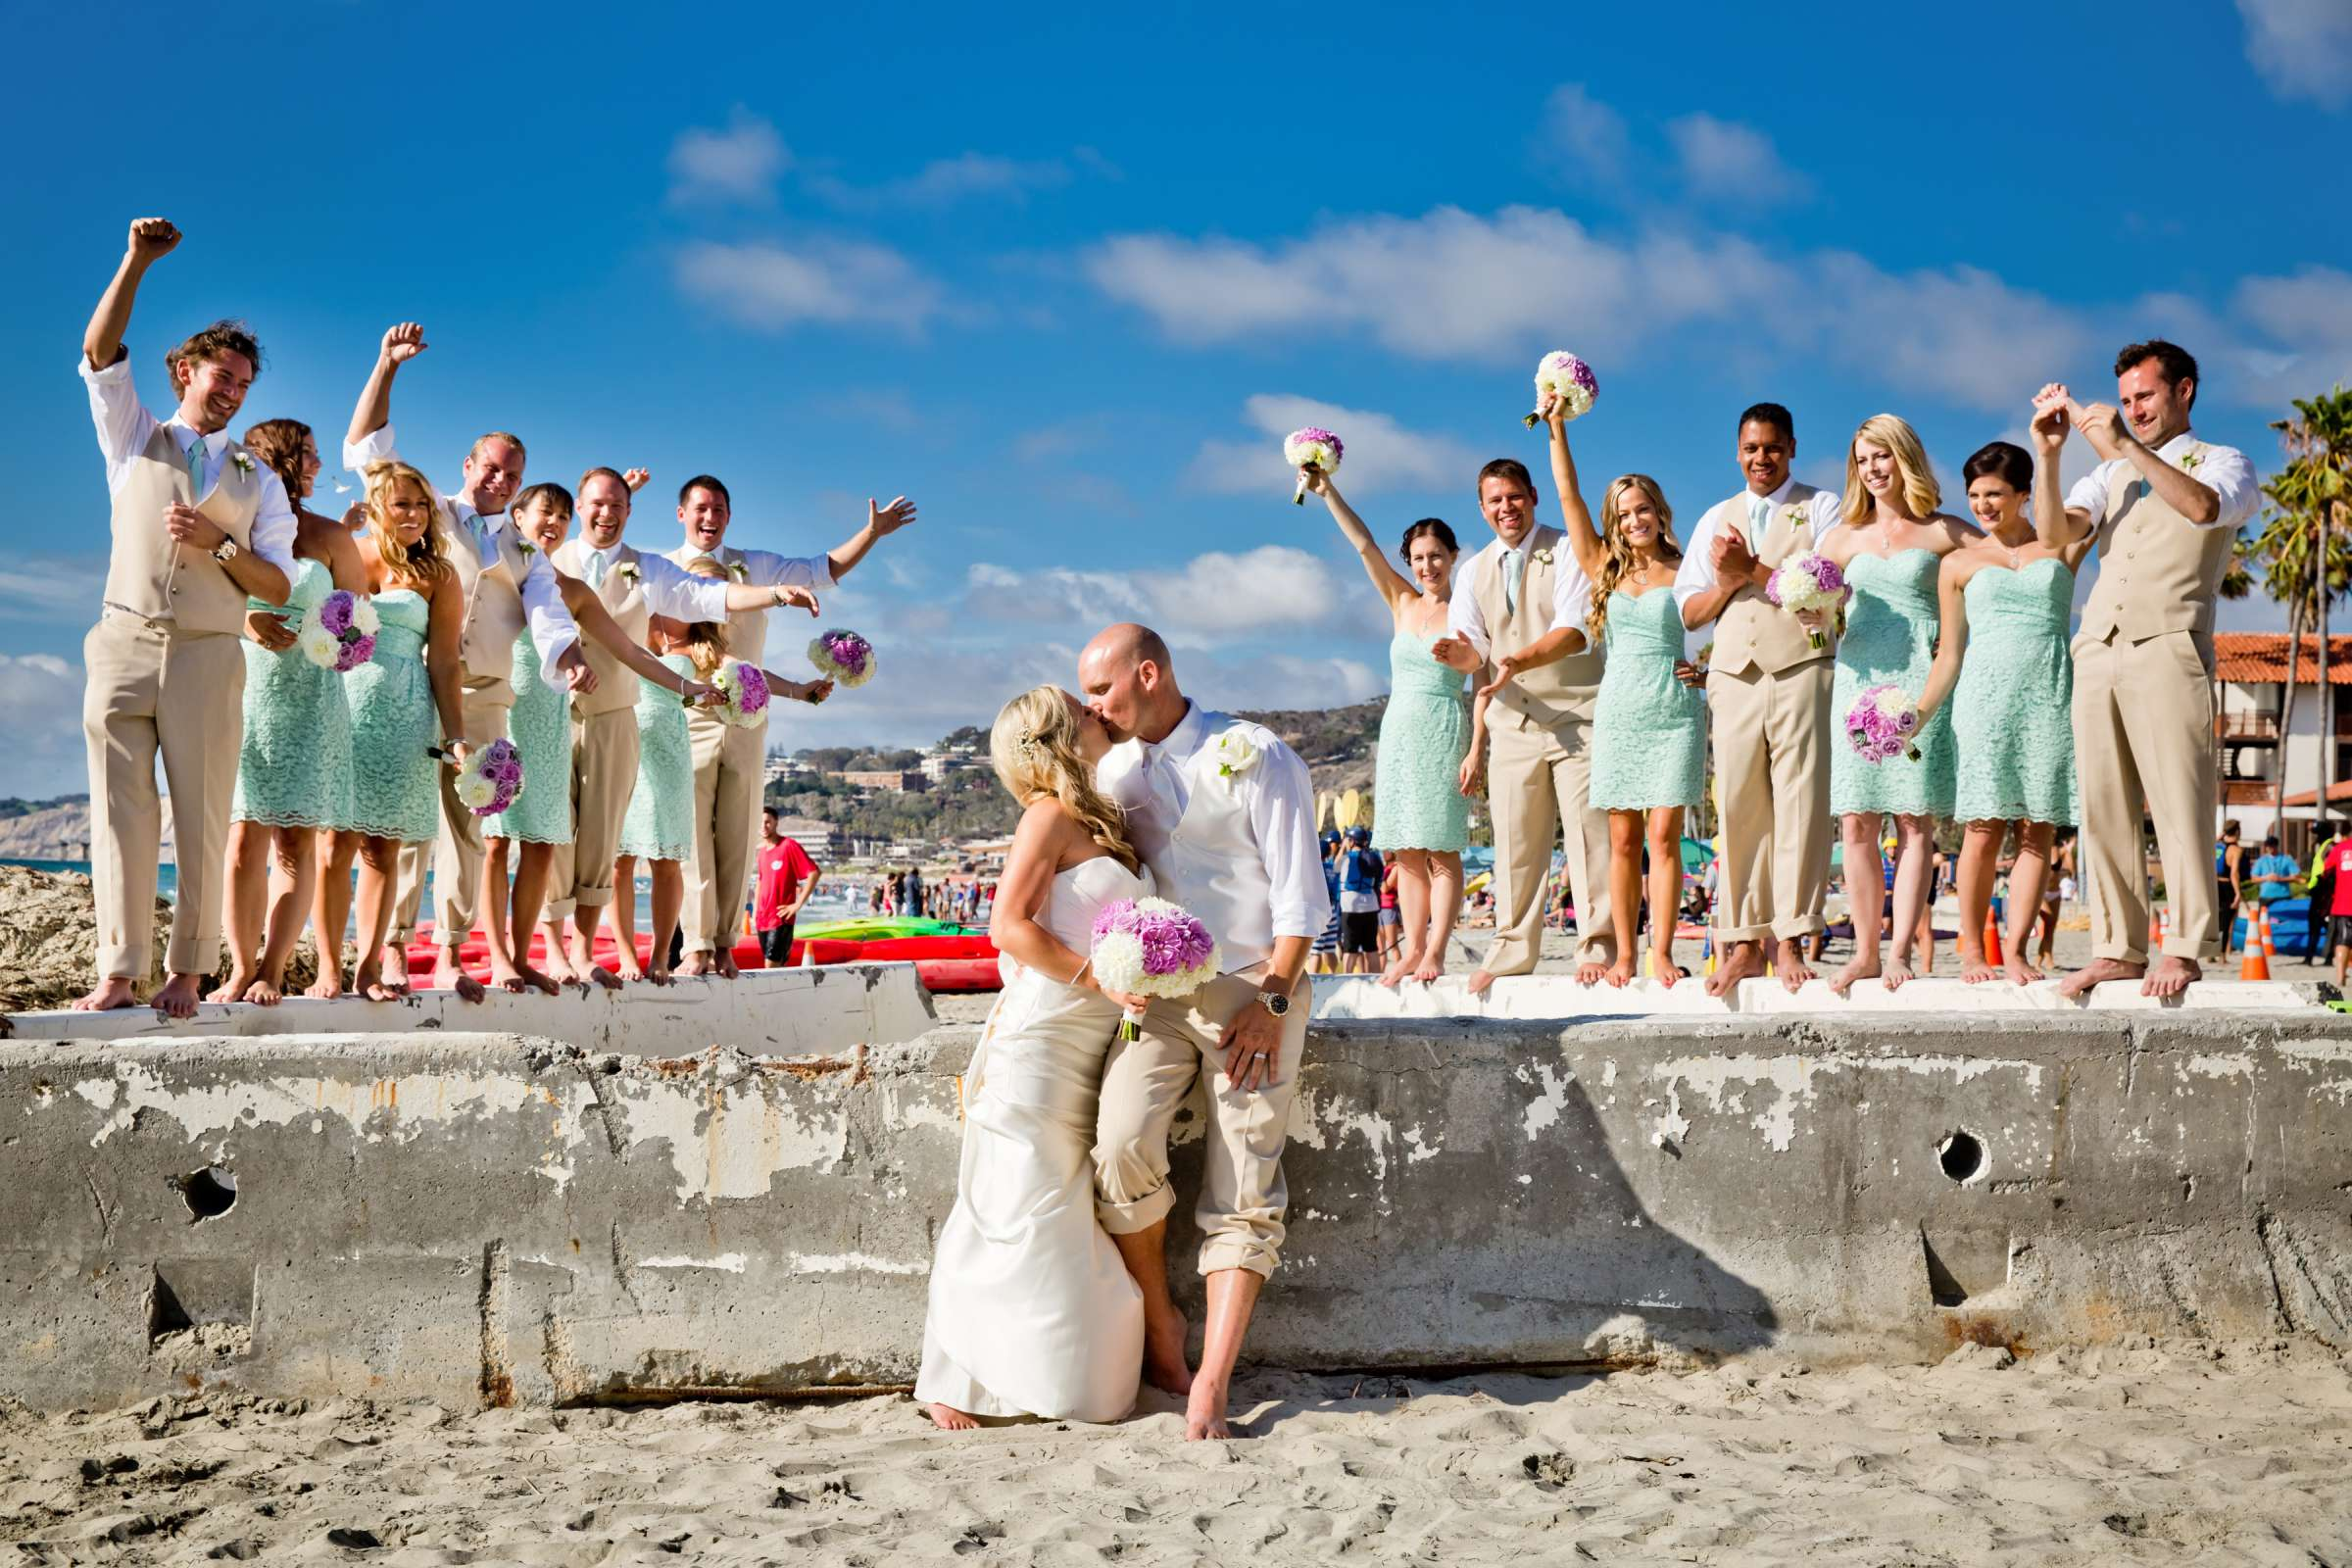 La Jolla Shores Hotel Wedding coordinated by I Do Weddings, Stefanie and Craig Wedding Photo #373288 by True Photography